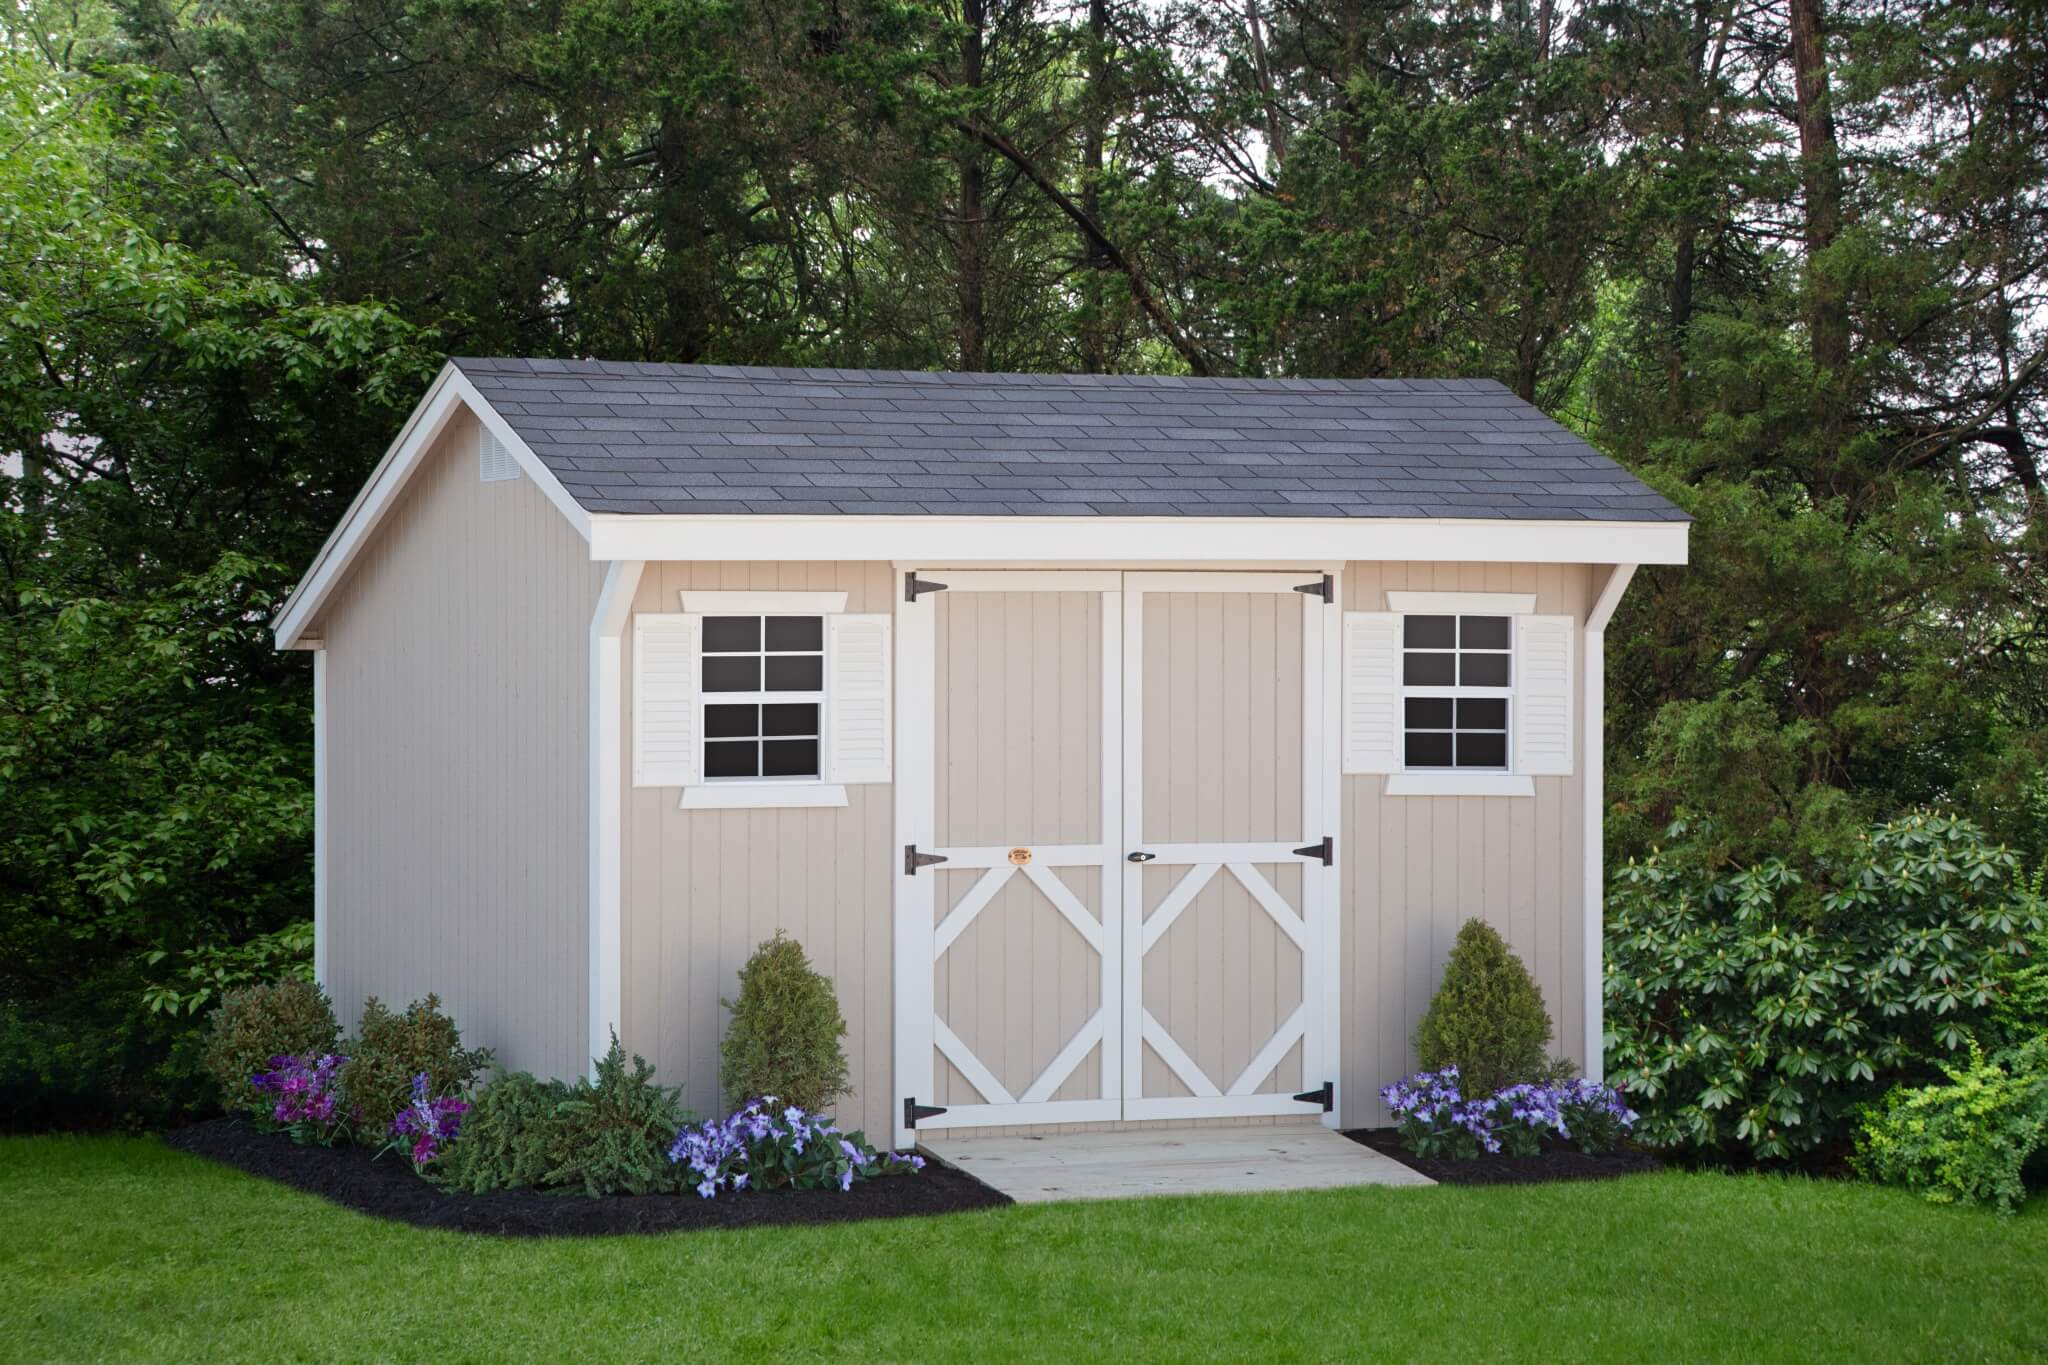 Classic Saltbox storage shed kit